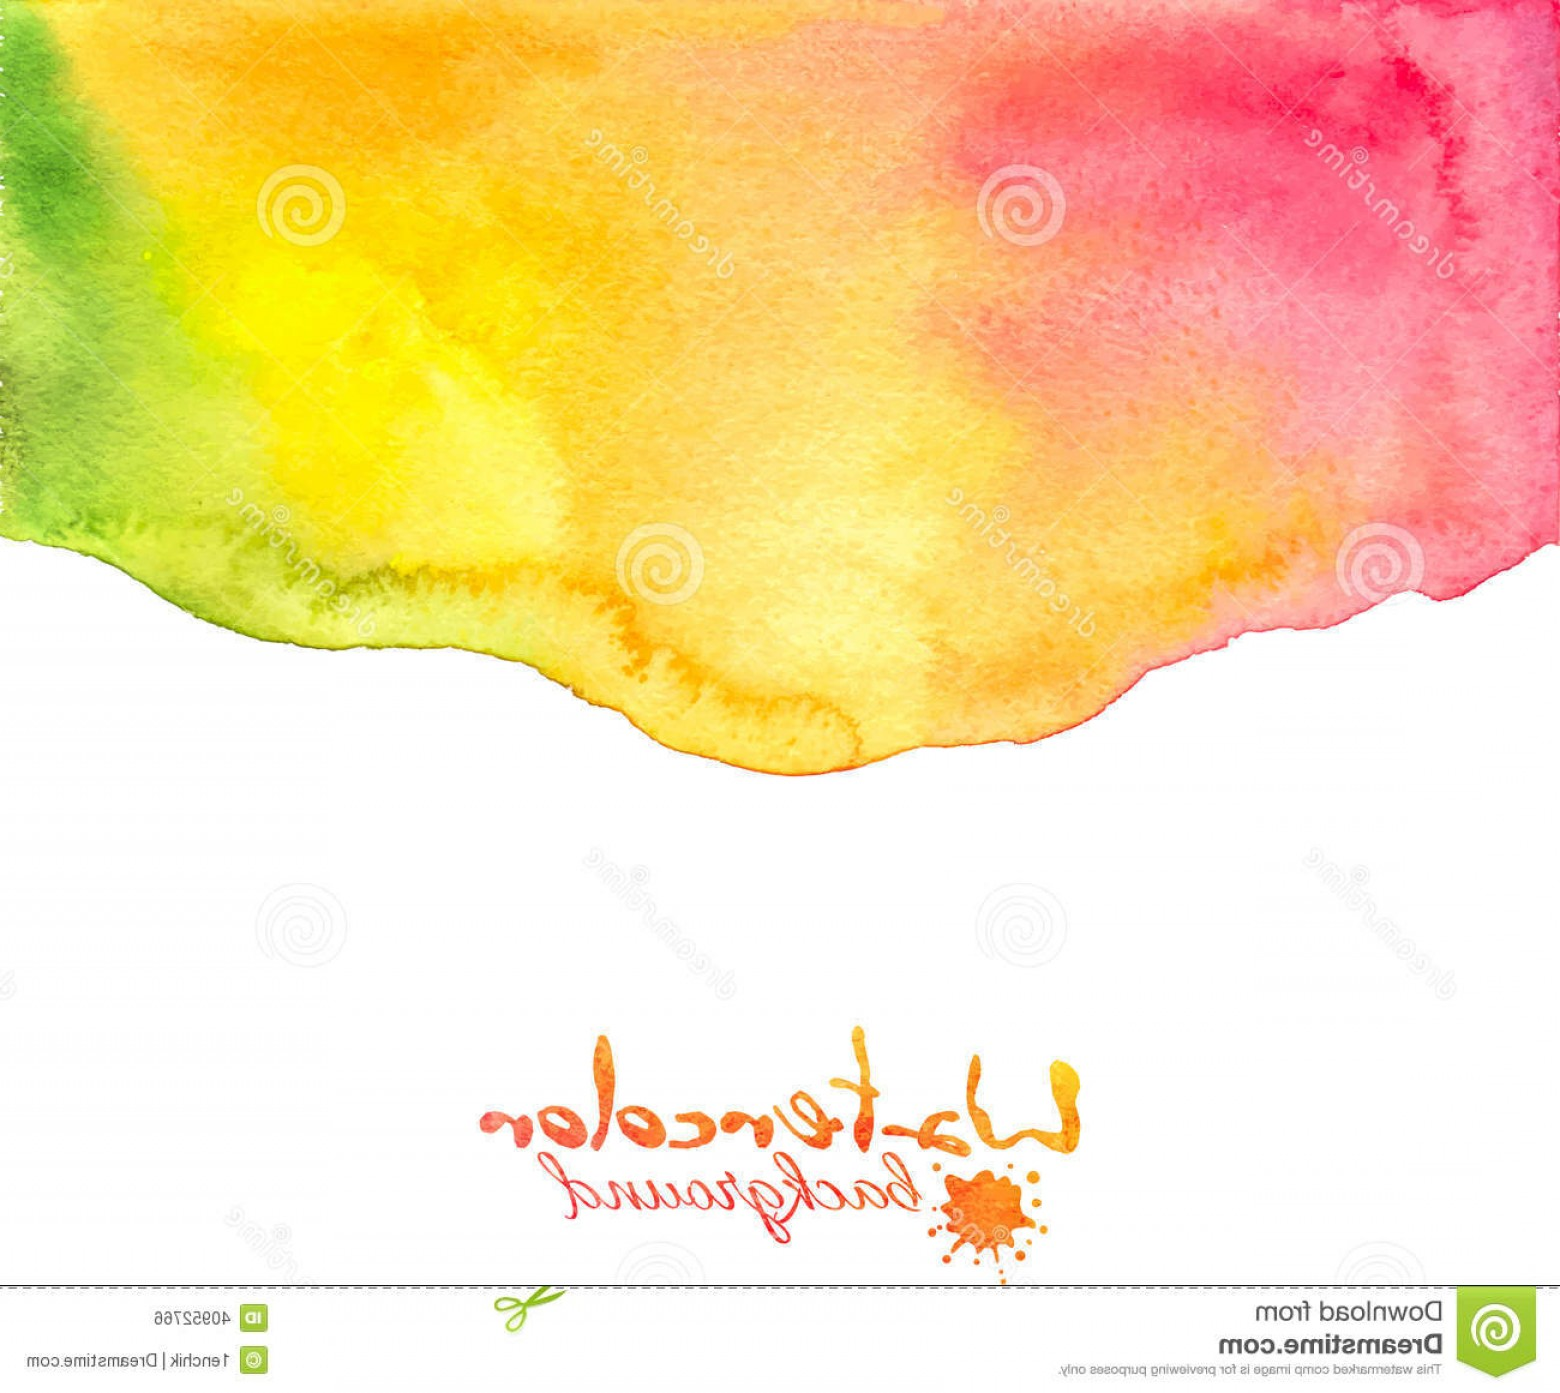 Watercolor Vector Background Free: Stock Photography Orange Red Watercolor Vector Background Abstract Image